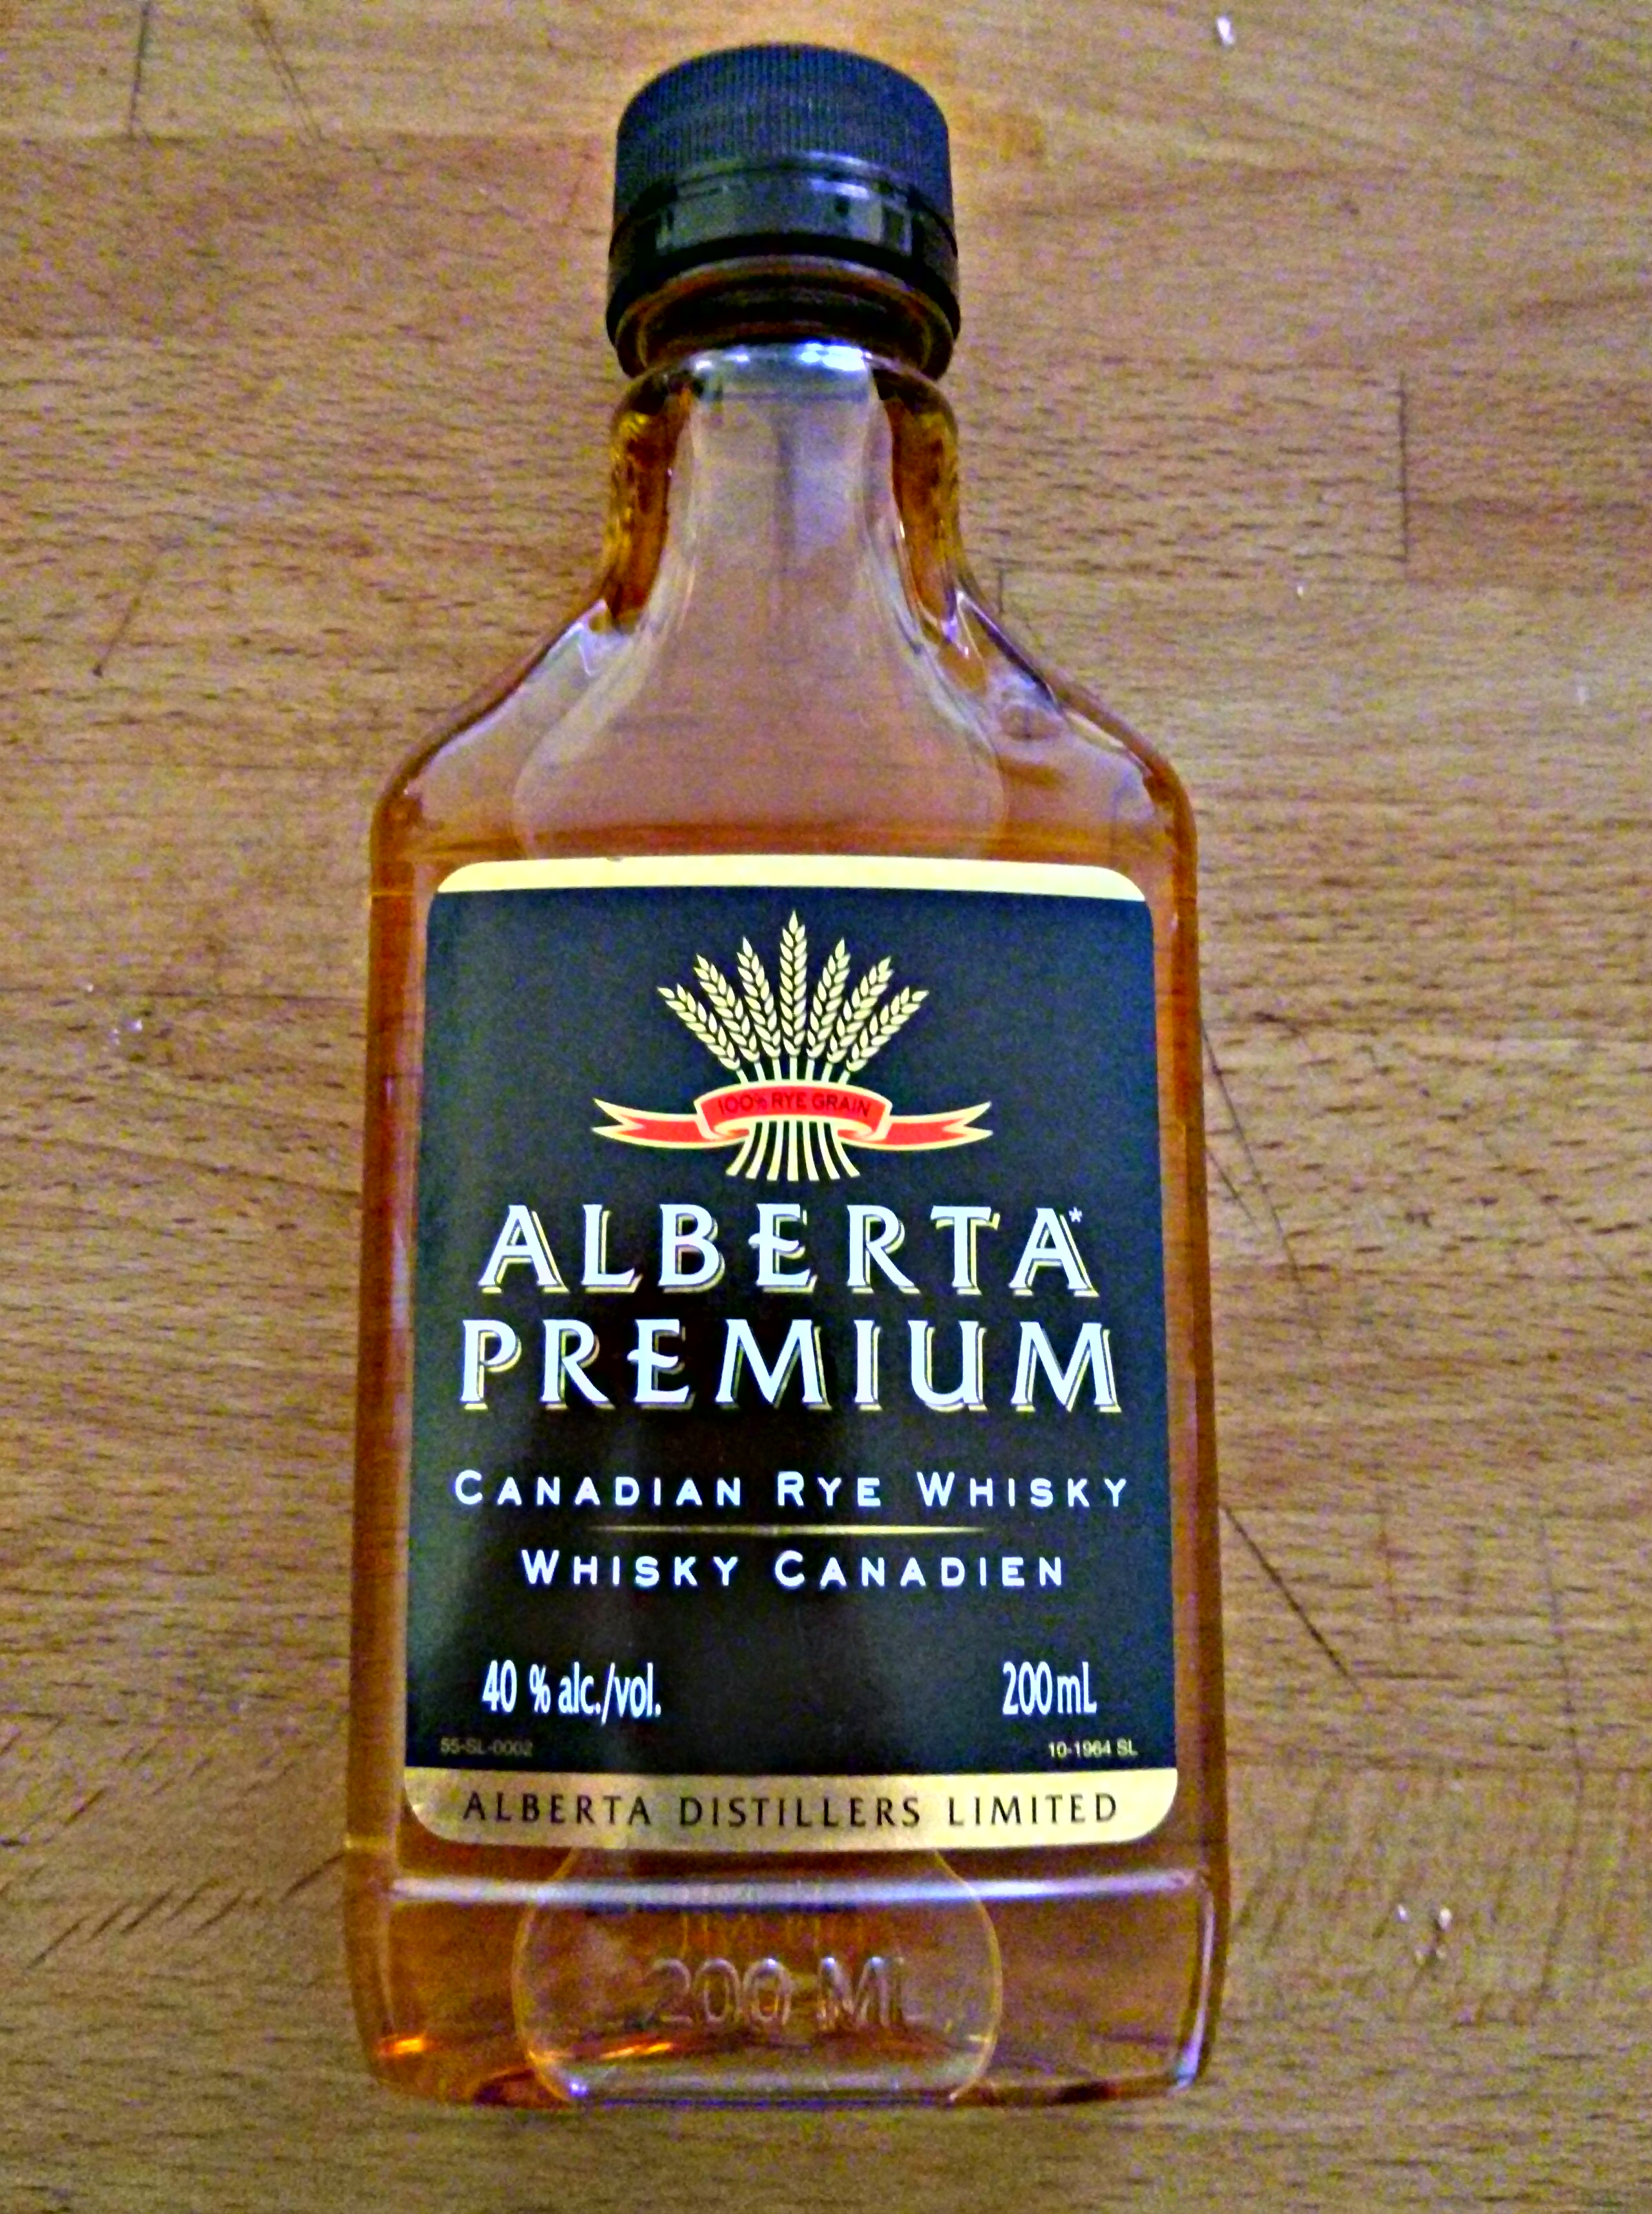 Alberta Premium Canadian Rye Whisky with Goran & Ryan